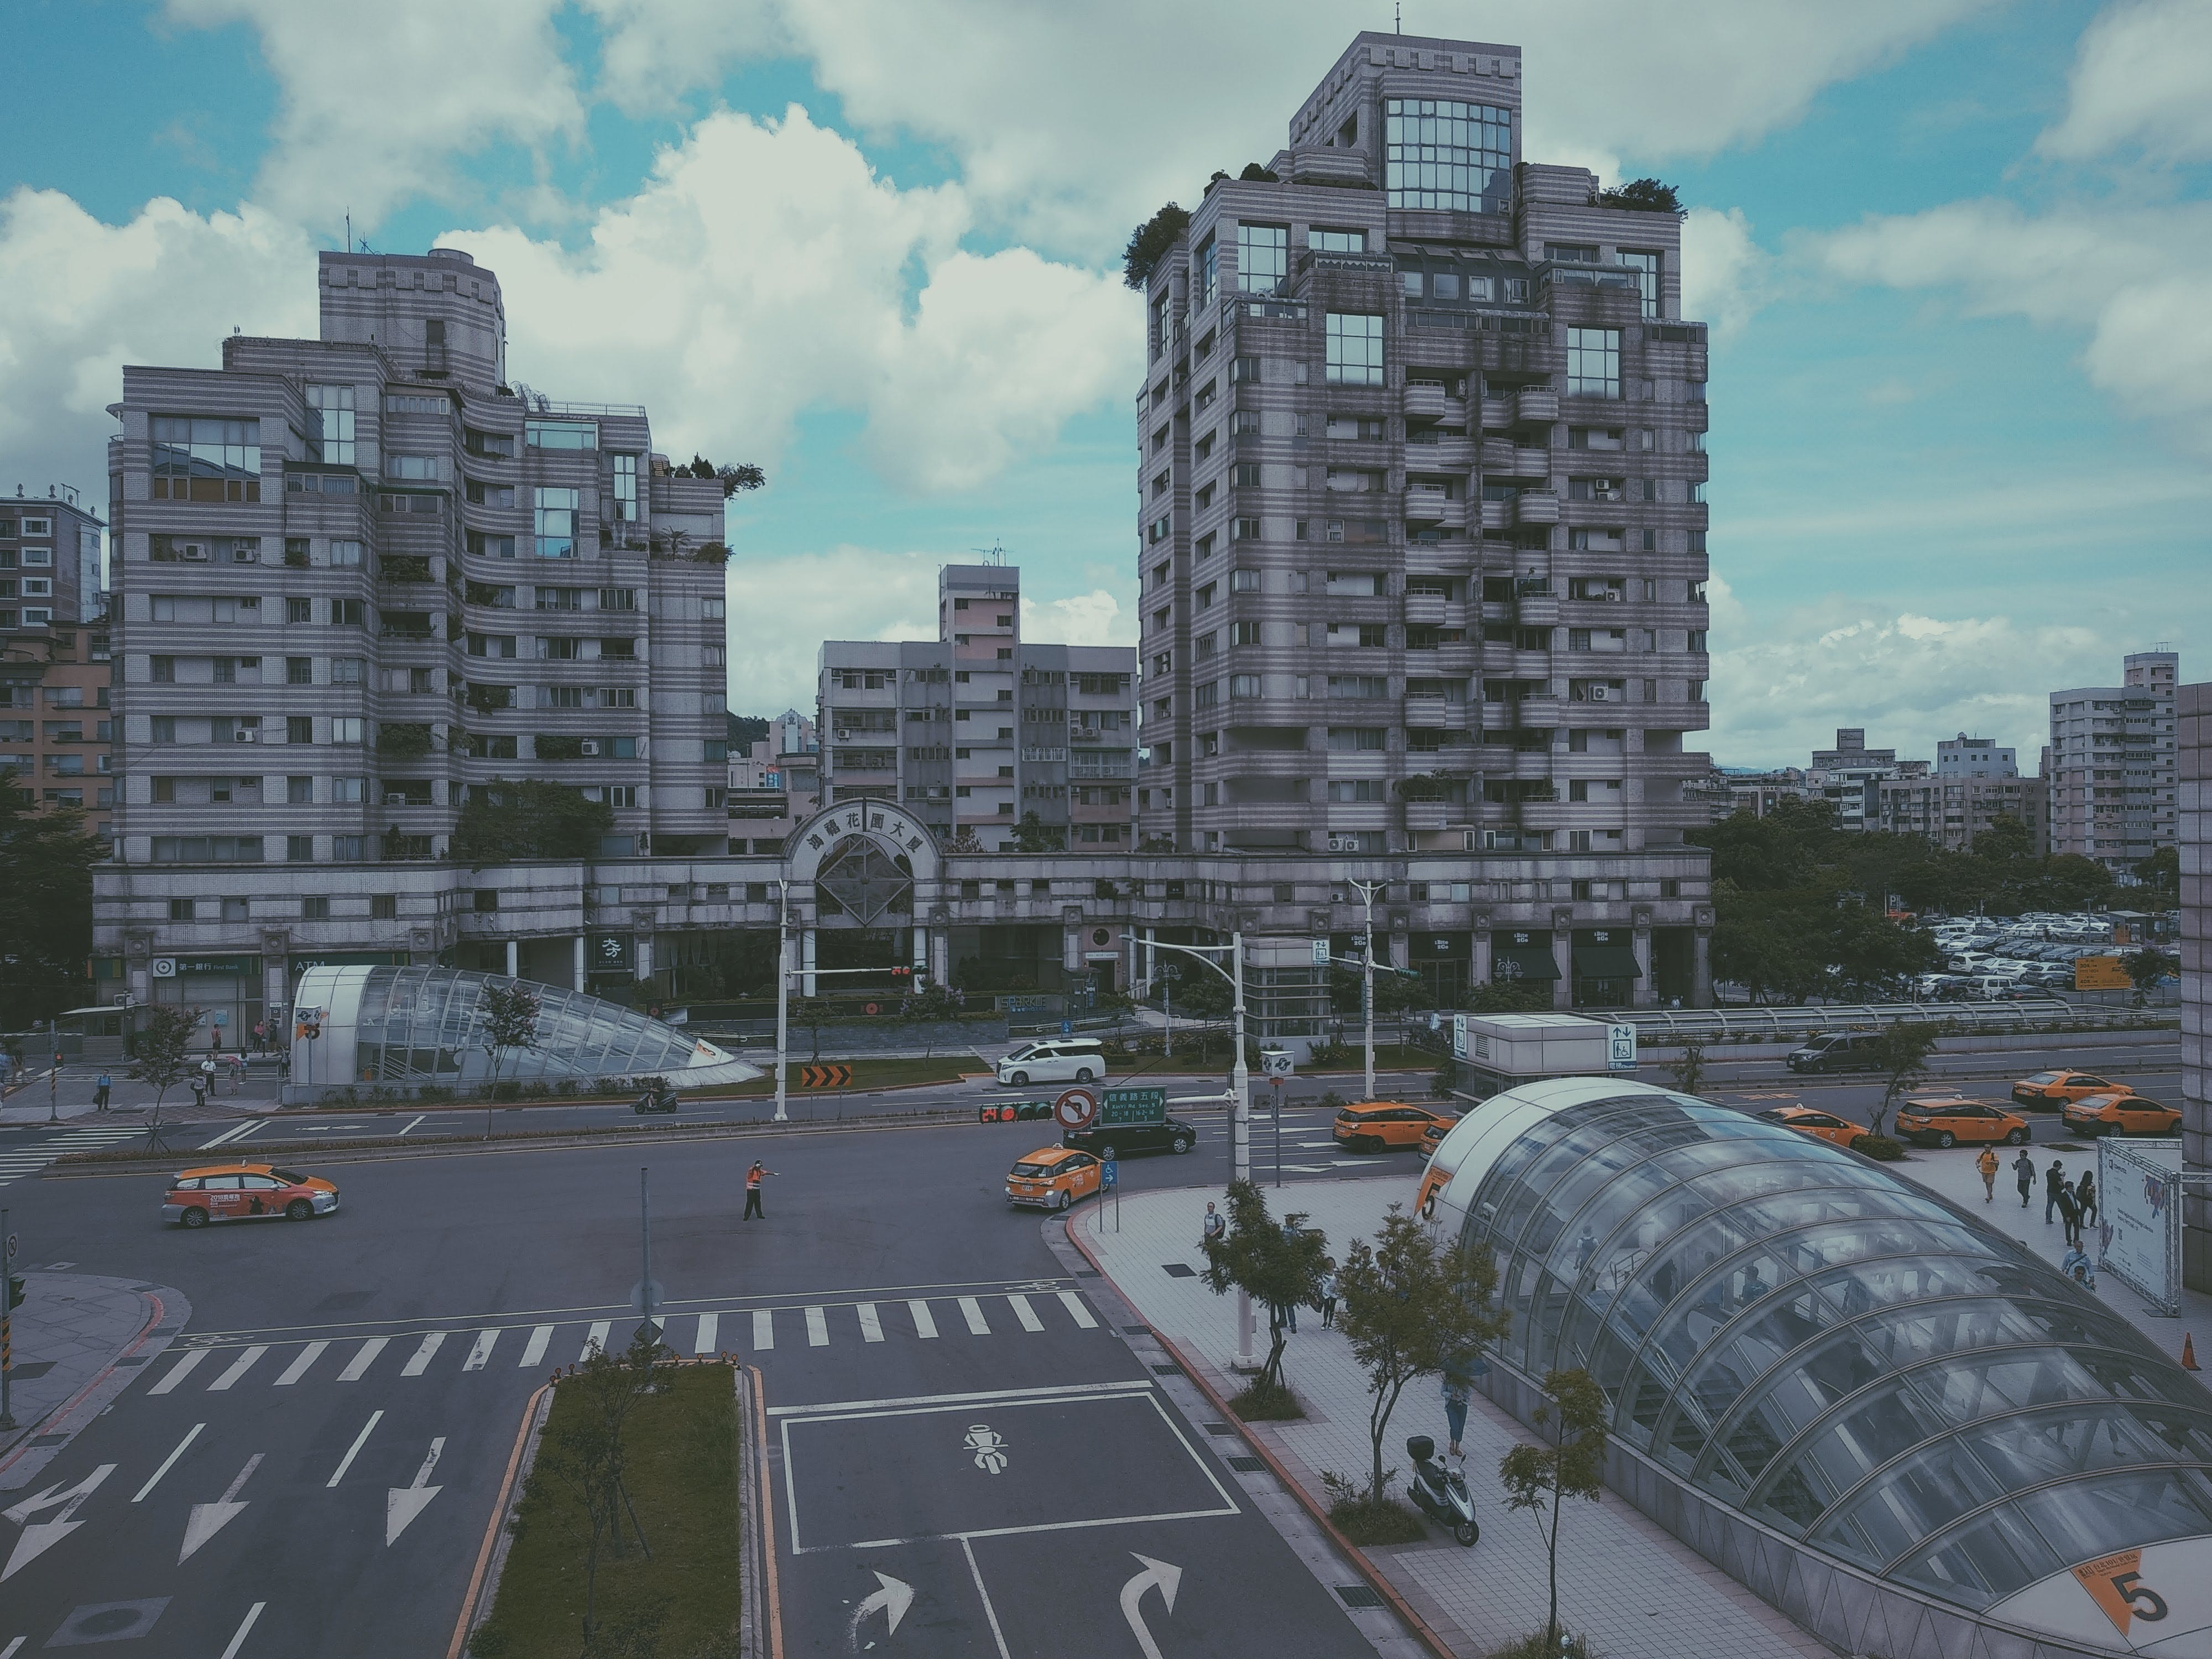 Free stock photo of building, intersection, mrt, sky